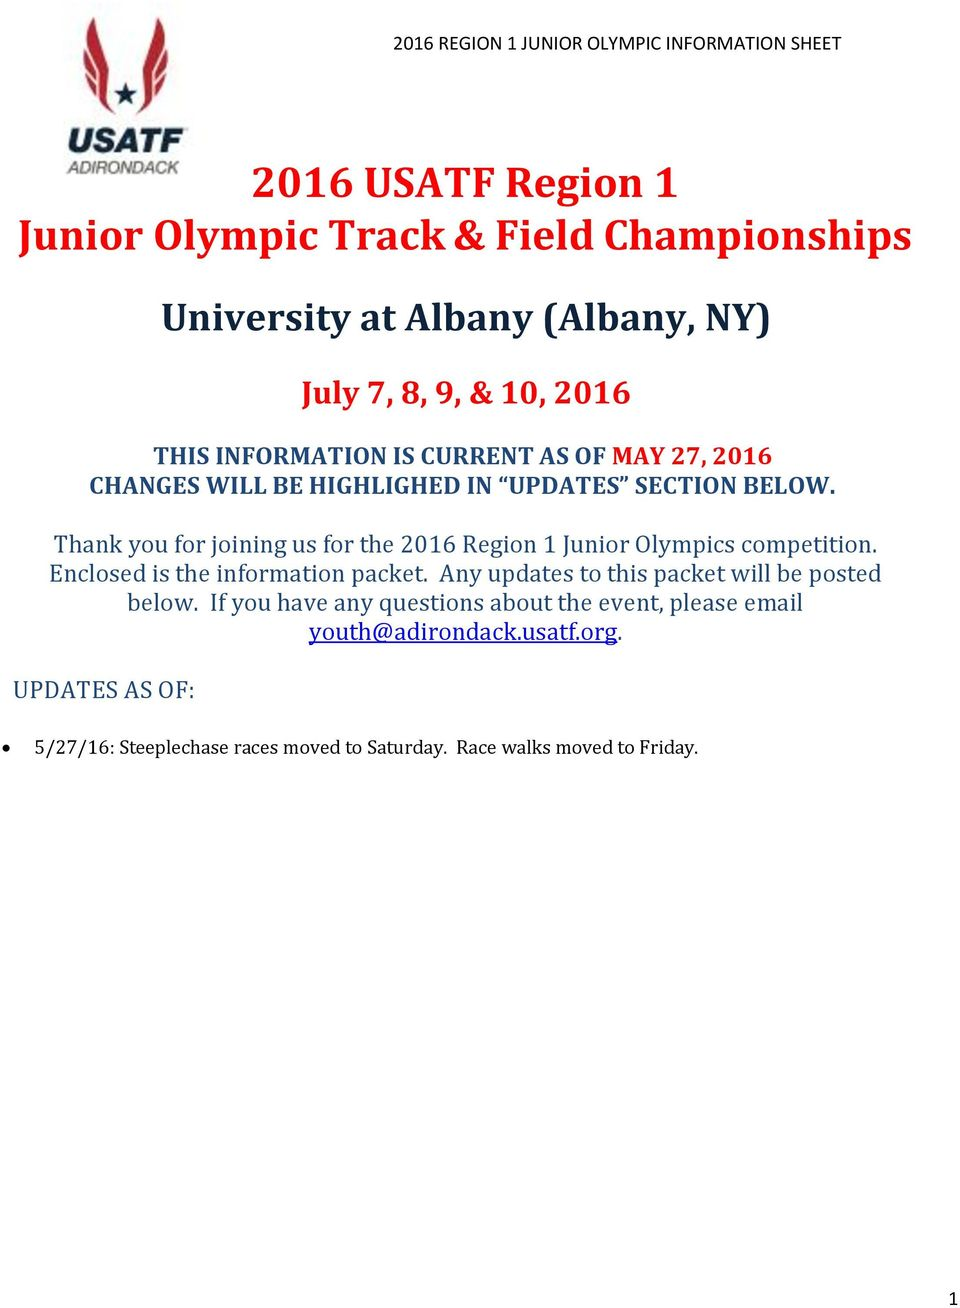 Thank you for joining us for the 2016 Region 1 Junior Olympics competition. Enclosed is the information packet.